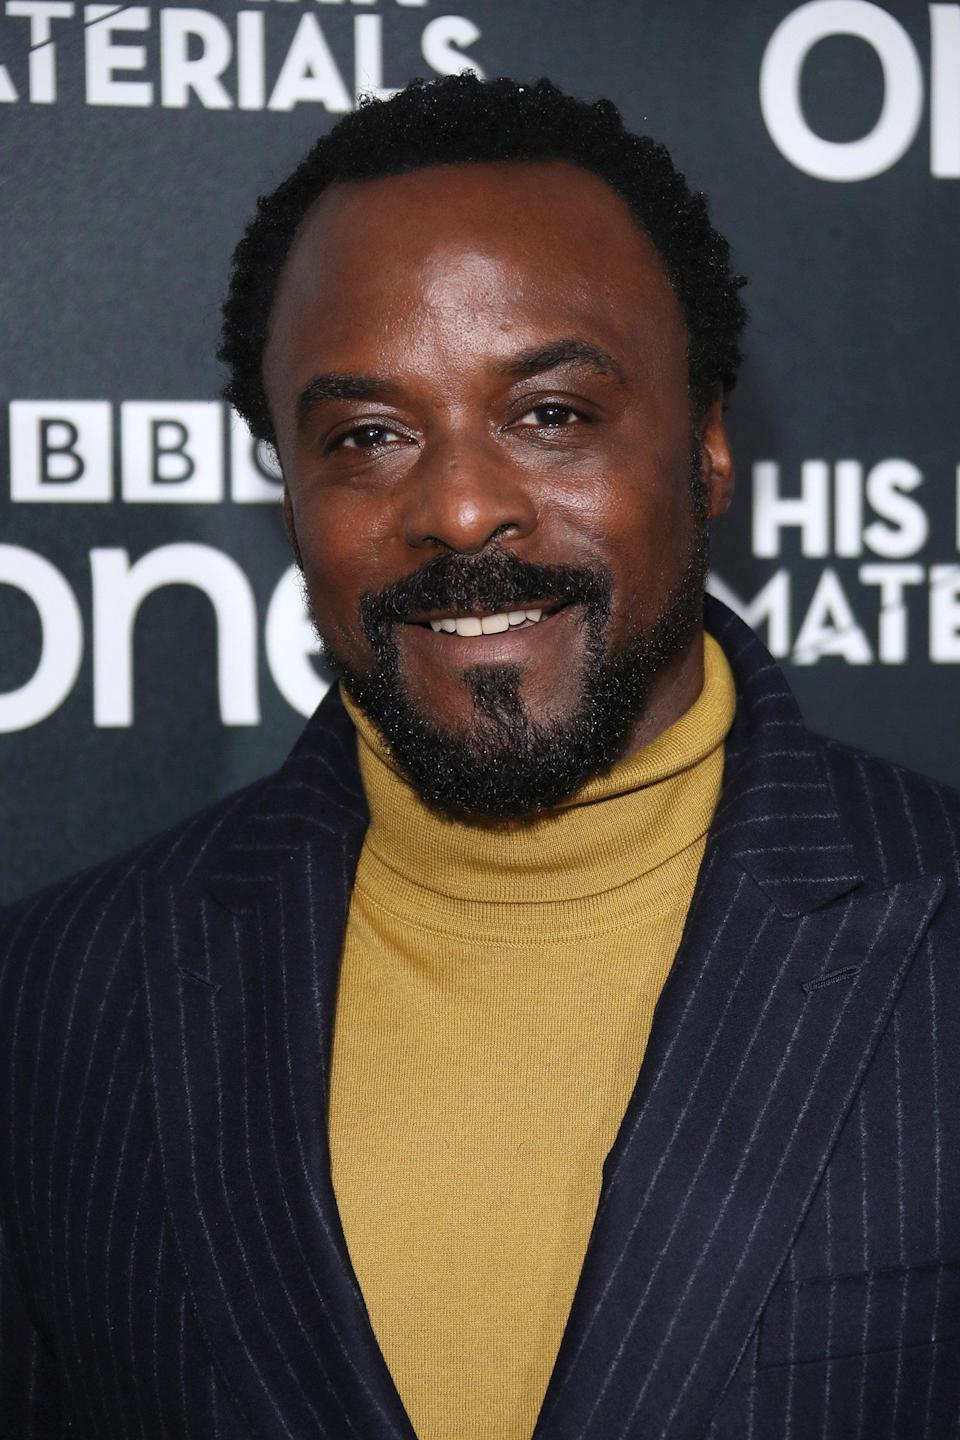 """<strong><h2>Ariyon Bakare Plays Lord Carlo Boreal</h2></strong> <br> <strong>Who Is Carlo?<br></strong>He is an old Englishman, and has a touch and go history with Mrs. Coulter, who once seduced him for information. He meets Lyra multiple times, oftentimes stealing with he needs from her leaving her to try and win it back. His dæmon is a serpent. <br> <br> <strong>Where You've Seen Bakare?<br></strong>Bakare is no stranger to magical words, having appeared on <em>Carnival Row</em> as Darius, and <em>Good Omens</em> as Ligur. He also starred in the BBC soap opera <em>Doctors</em> in the early 2000s. <span class=""""copyright"""">Photo: Mike Marsland/WireImage.</span>"""